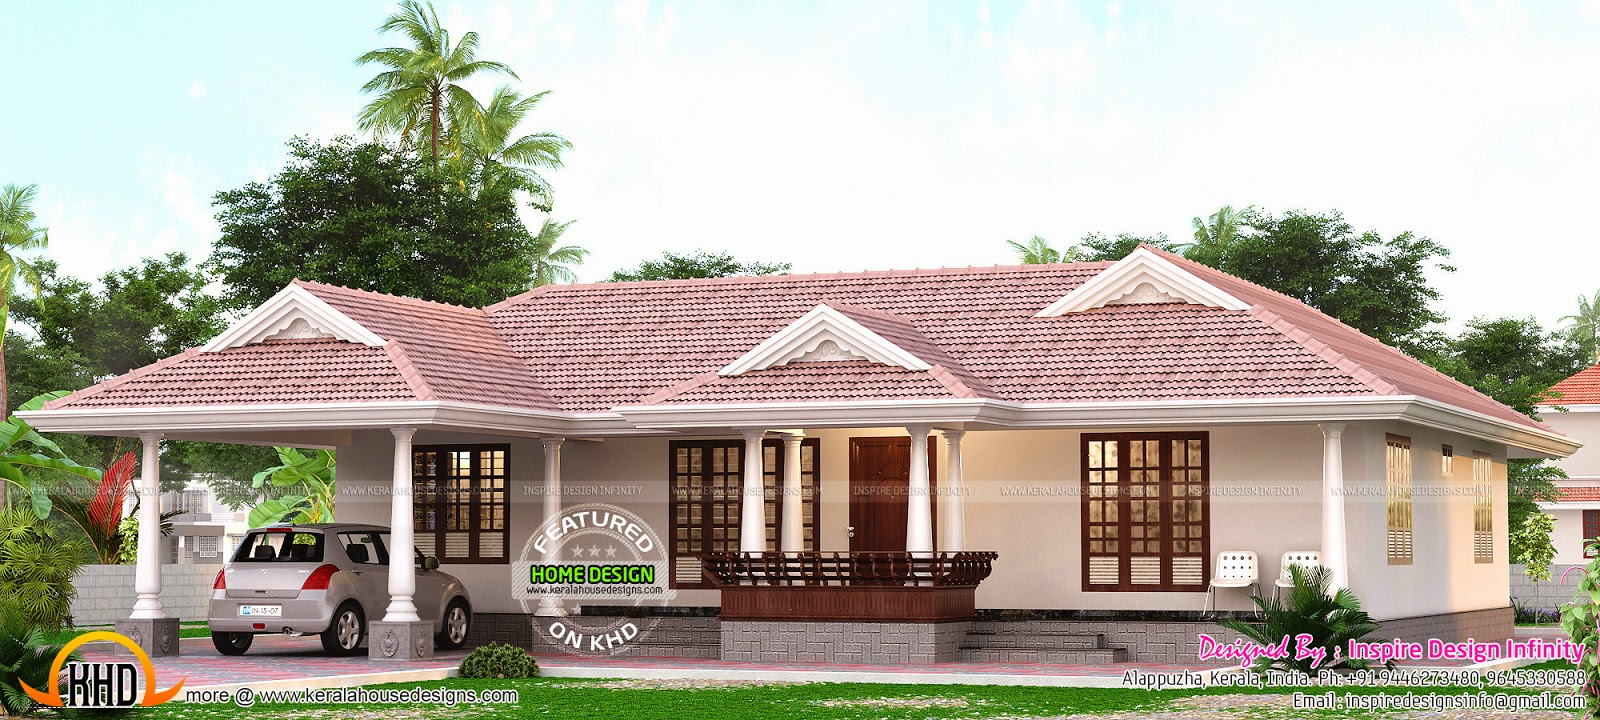 Kerala model single storied home kerala home design and for House plans kerala model photos